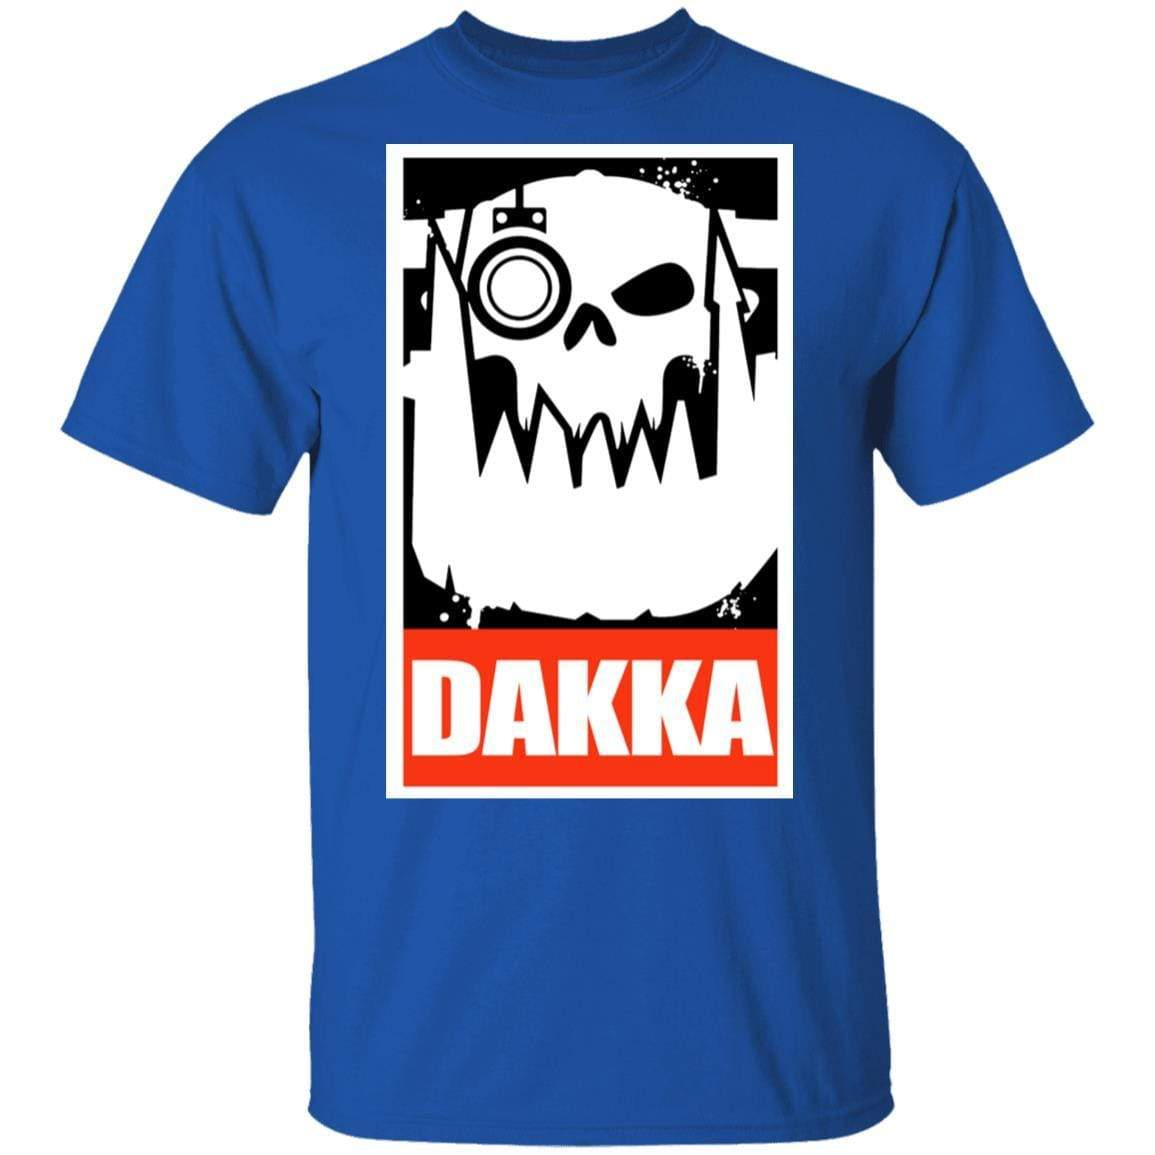 Orks Dakka Tabletop Wargaming And Miniatures Addict T-Shirts, Hoodies 1049-9971-88767417-48286 - Tee Ript